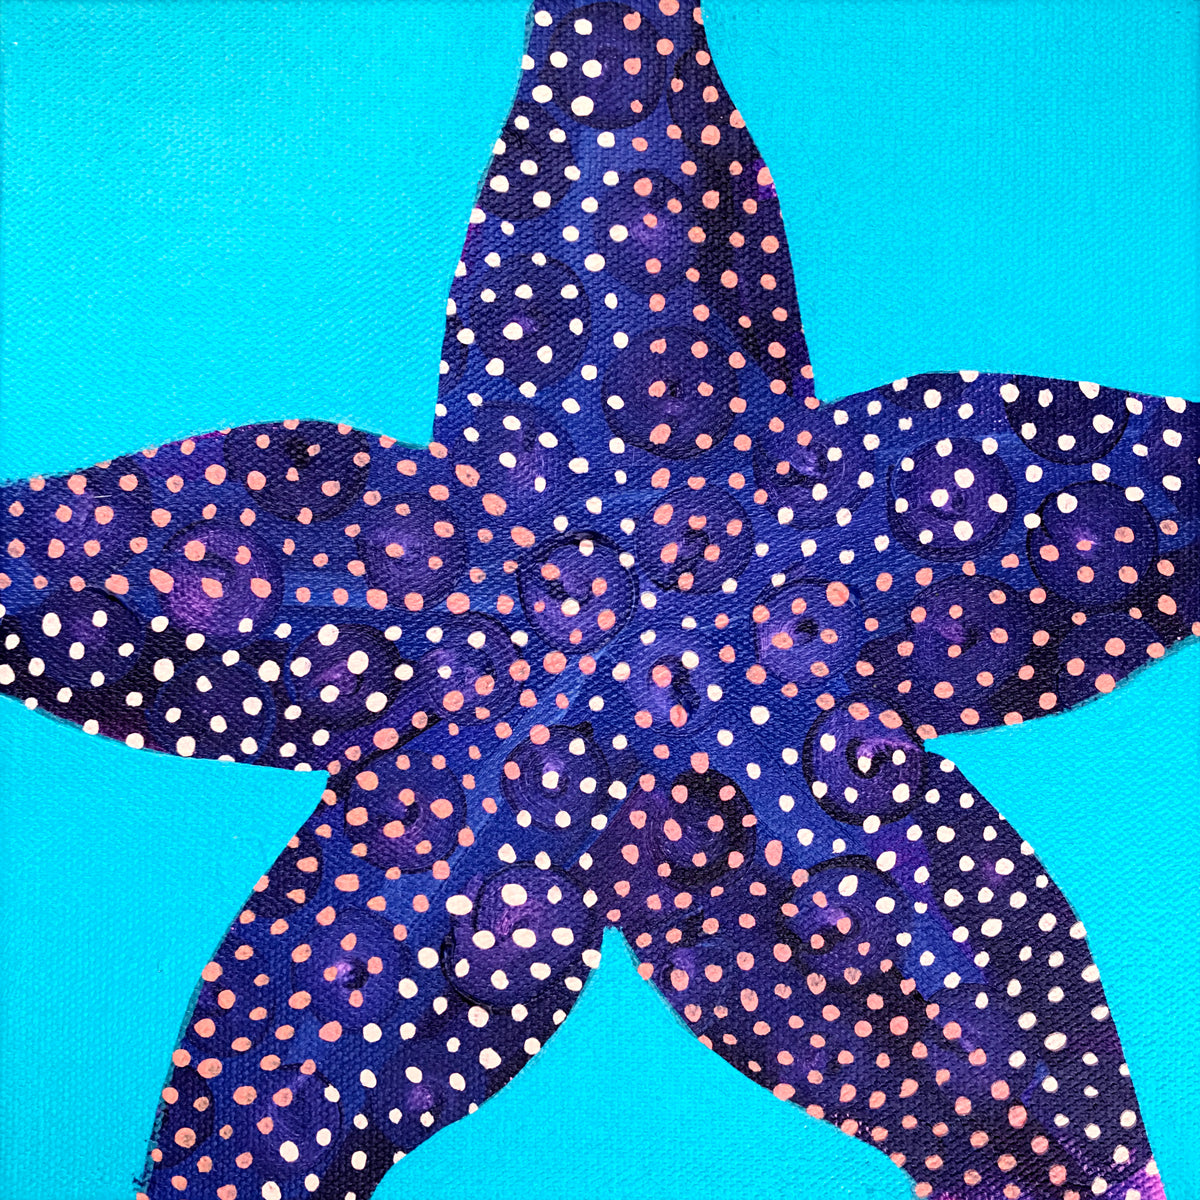 Starfish Art by Dora Knuteson